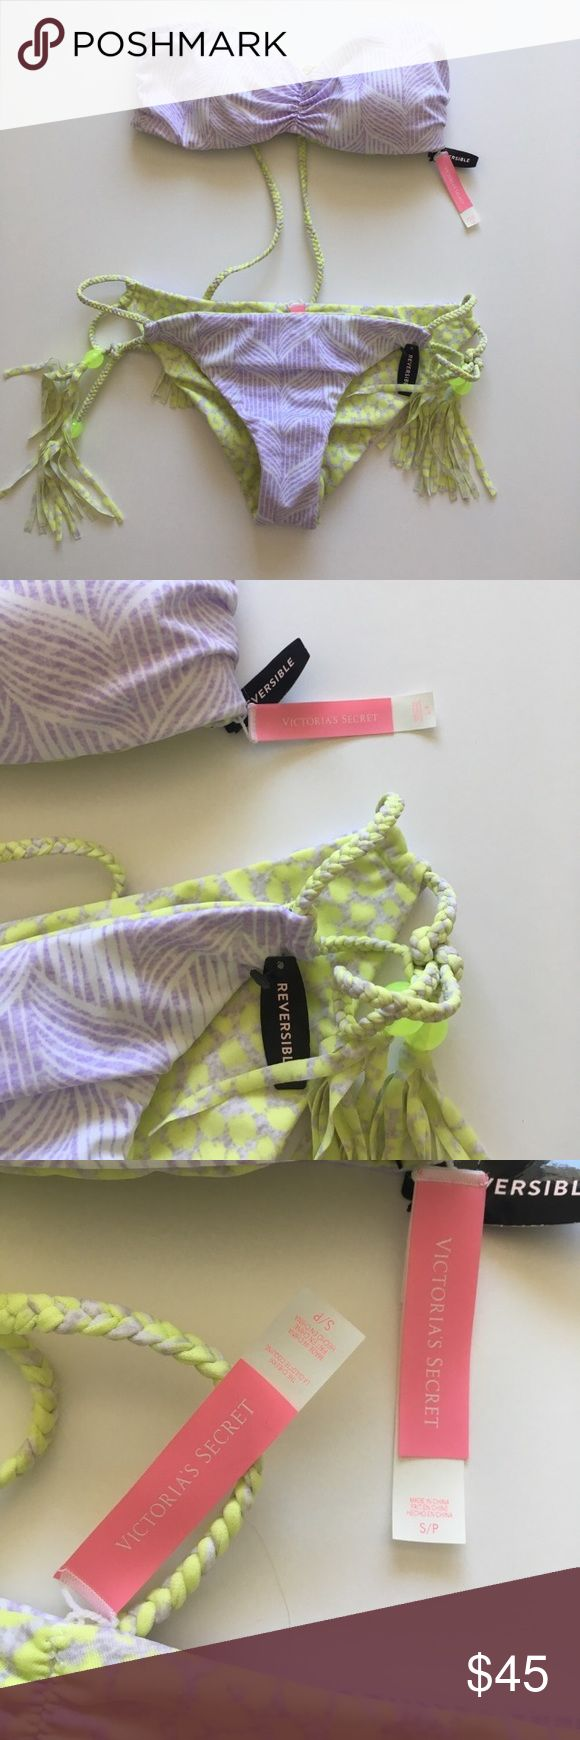 • Reversible Victoria Secret bikini • Purple on one side and green on the other. Braided strings. NEW. Has hygienic liner inside bottoms. Bundle to save. Victoria's Secret Swim Bikinis